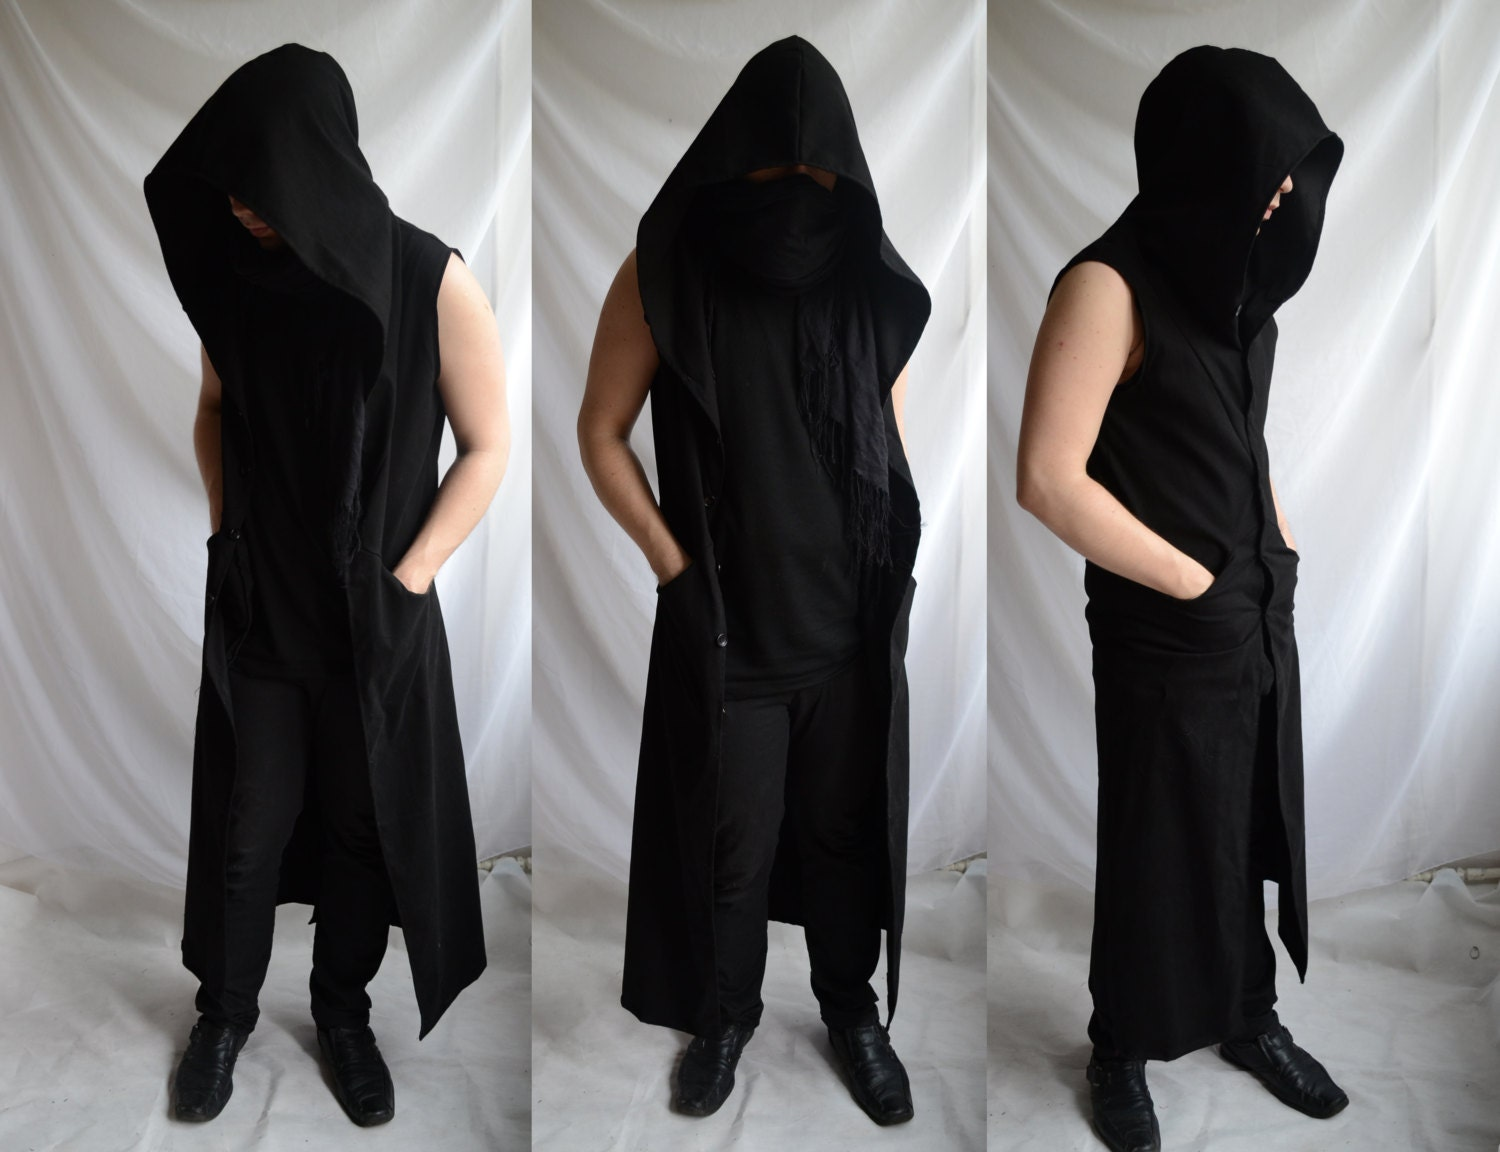 Netherworld Hoodie long sleeveless black mens coat hero